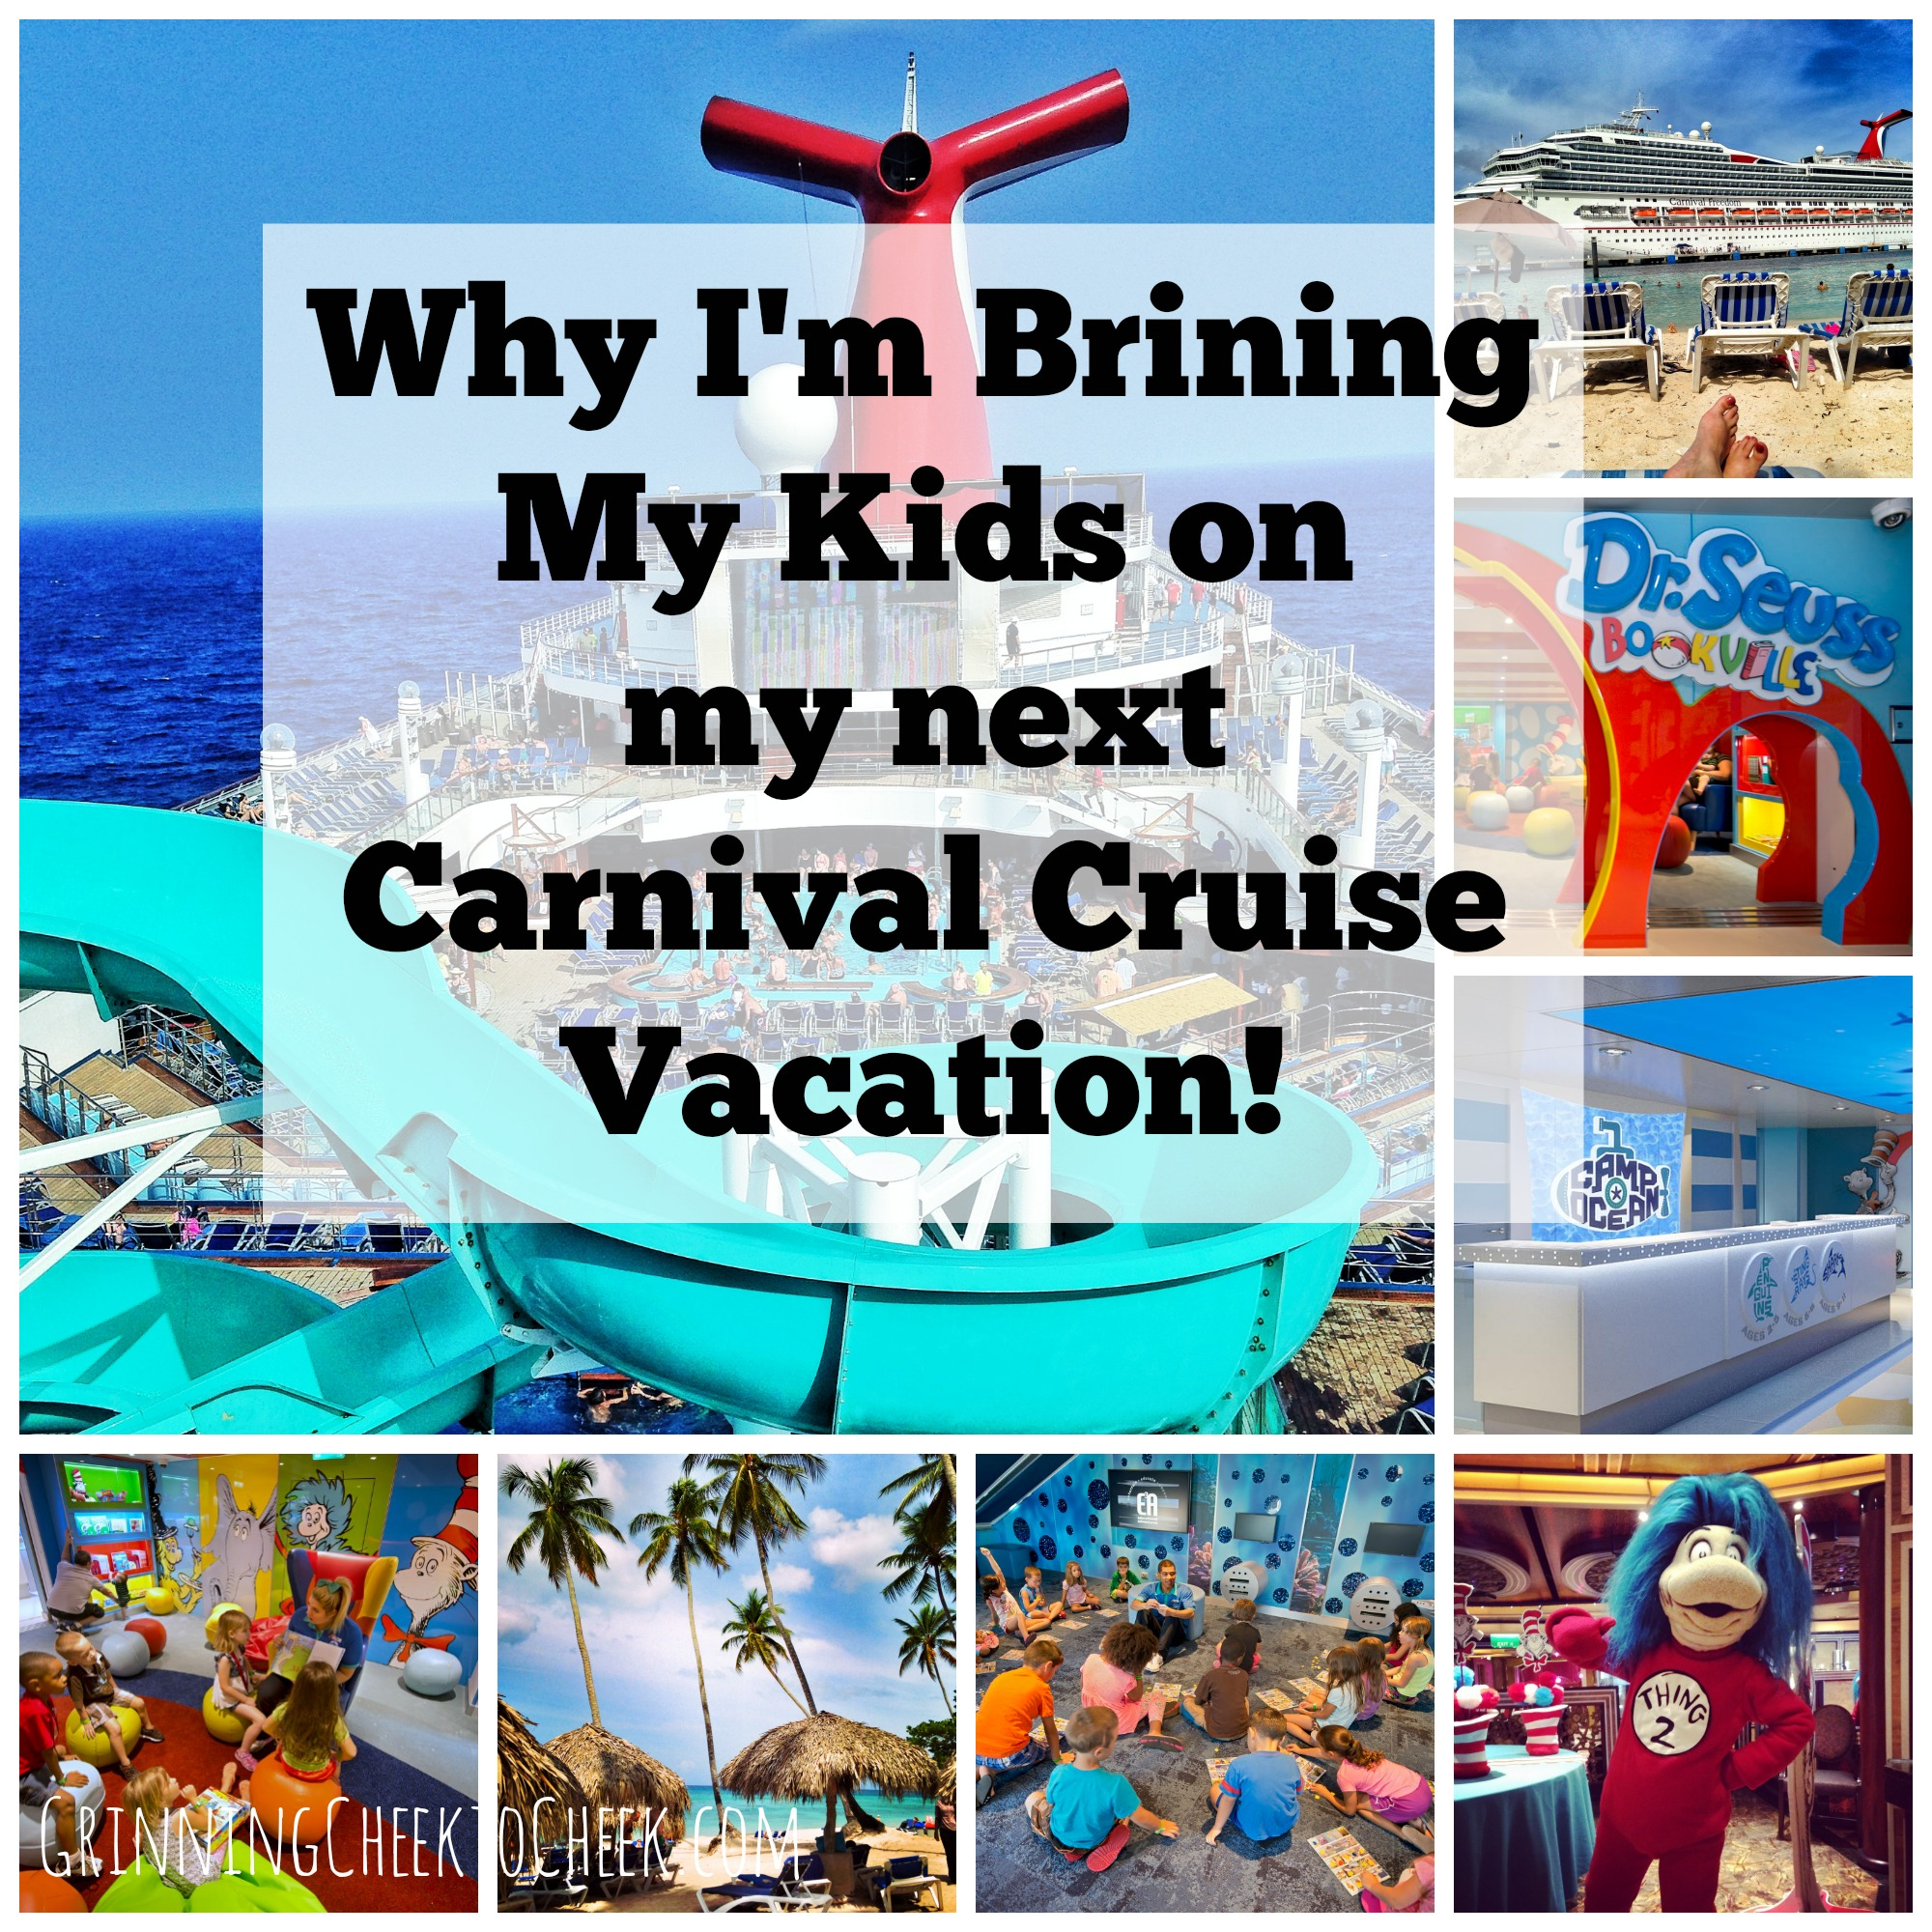 Why I'm Bringing My Kids On My Next Cruise